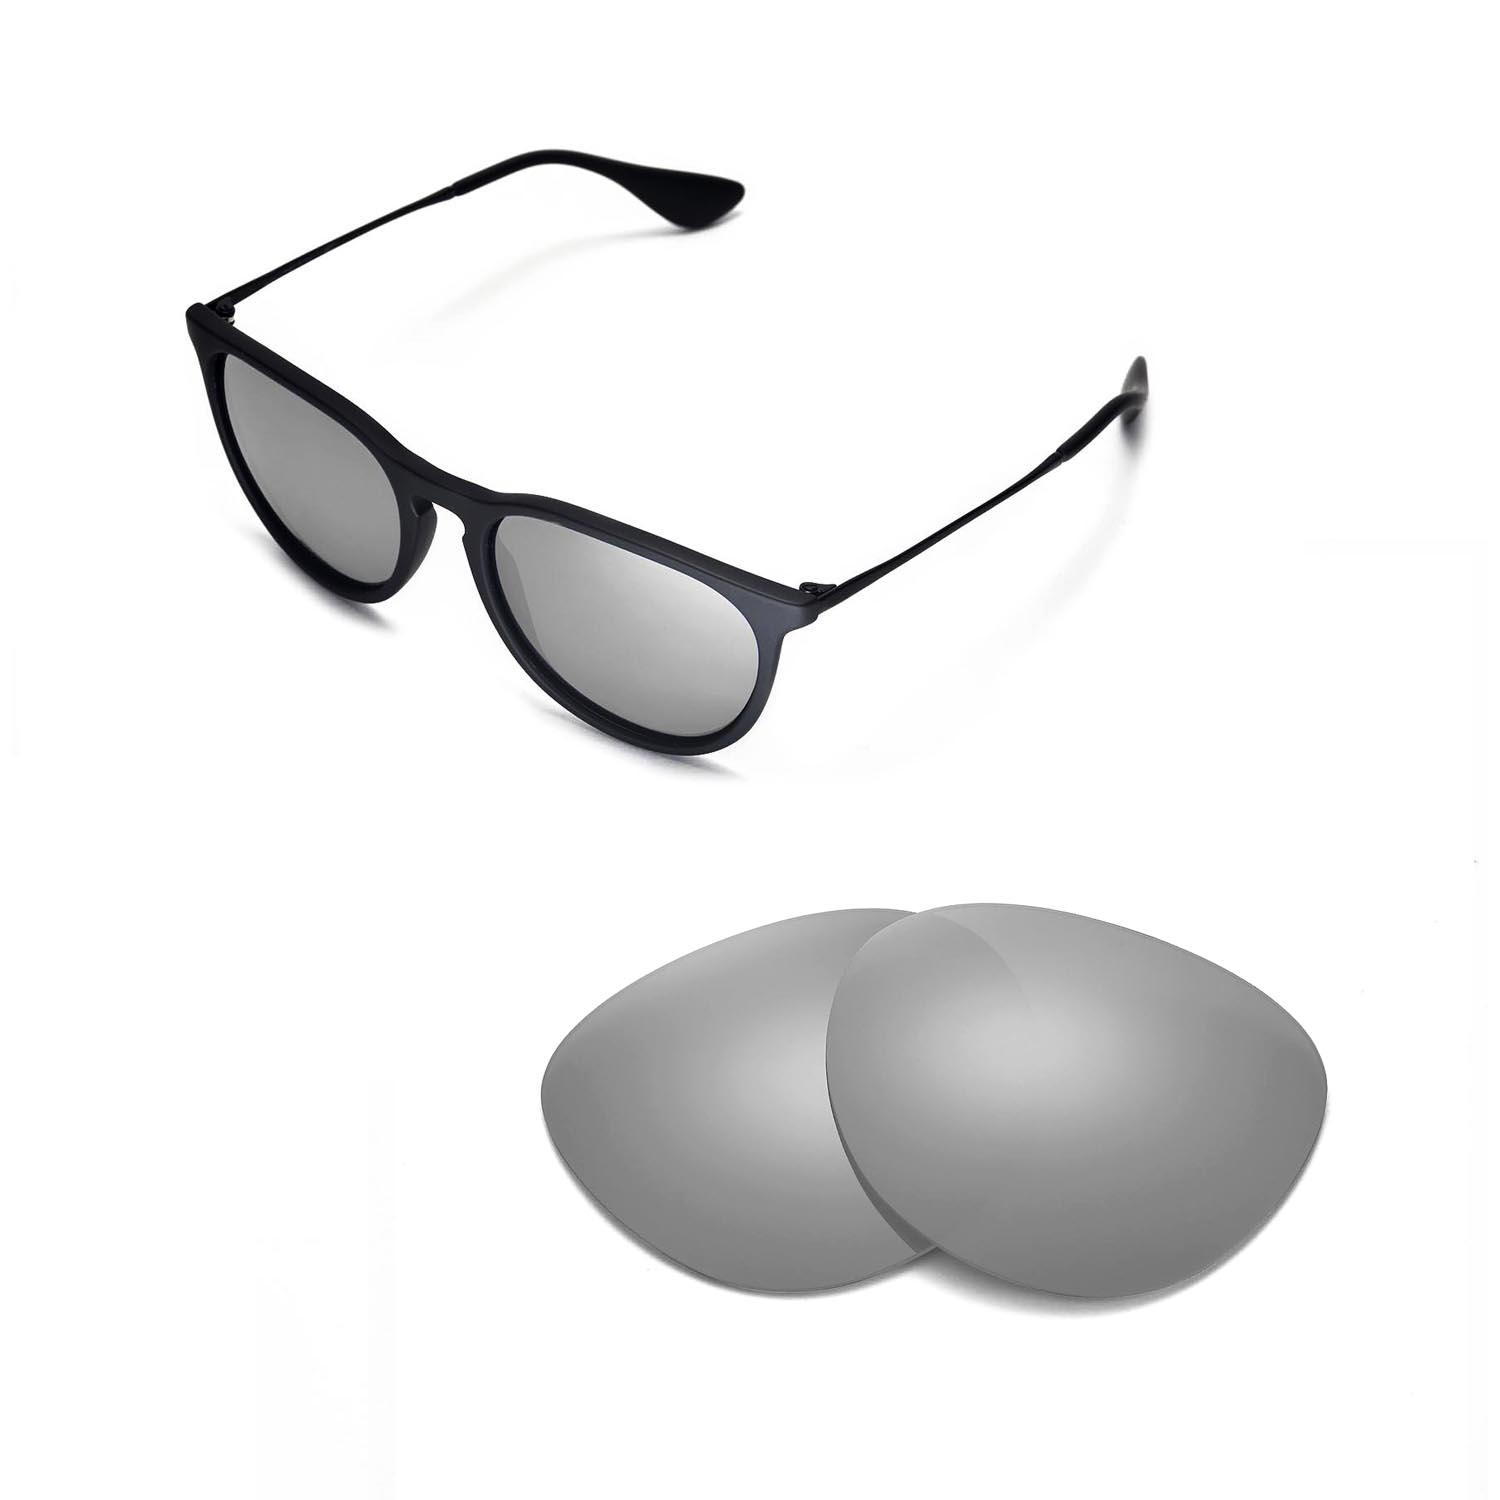 e3e57144ca3 Details about New Walleva Polarized Titanium Lenses For Ray-Ban Erika  RB4171 54m Sunglasses